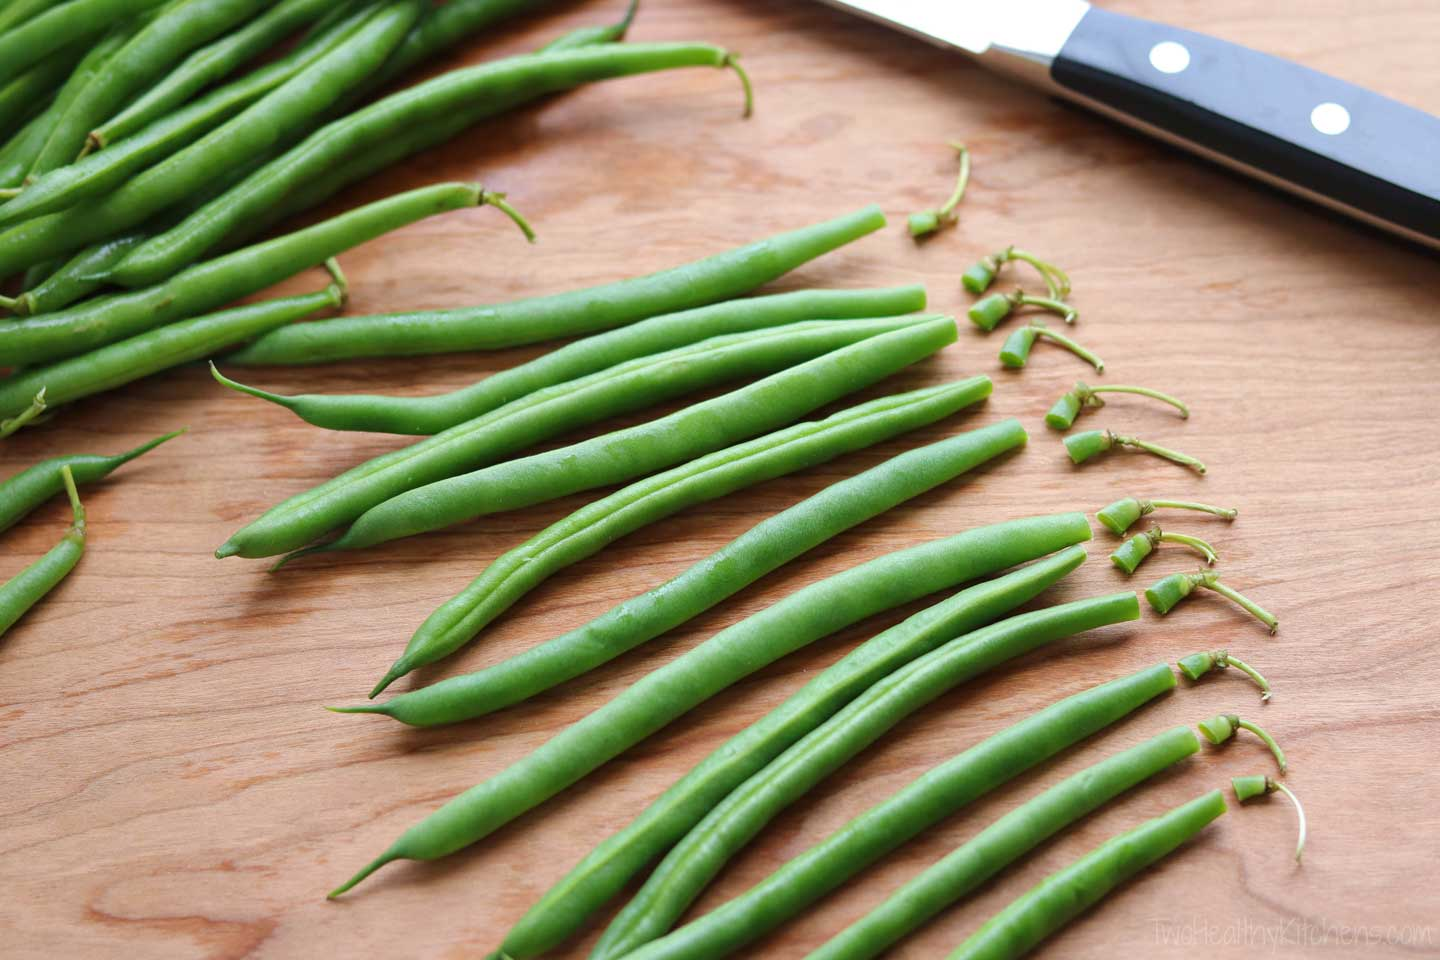 How do you trim fresh green beans? Well – that's kind of up to you! Of course, you'll want to trim away the stem end. But, whether you choose to remove the little tails, as well, is strictly personal preference. I like to leave the tails on, but you can do whichever you prefer!